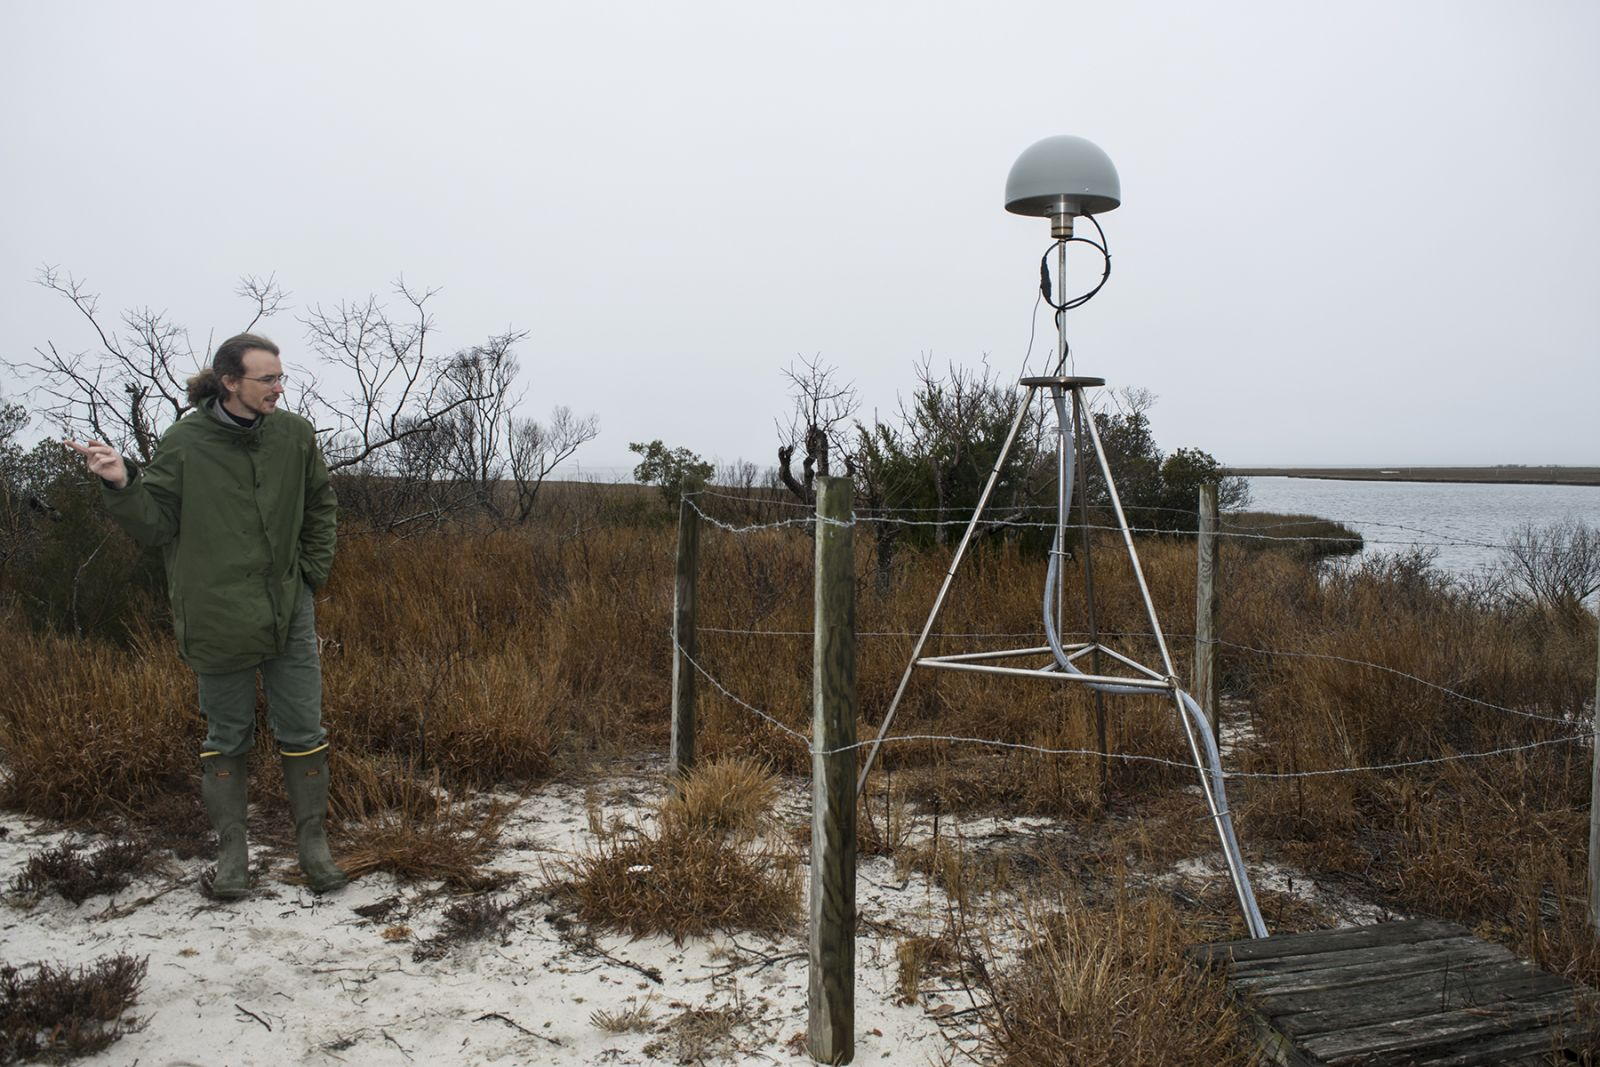 GIS specialist, Neil Winn, next to core station in Assateague, Maryland